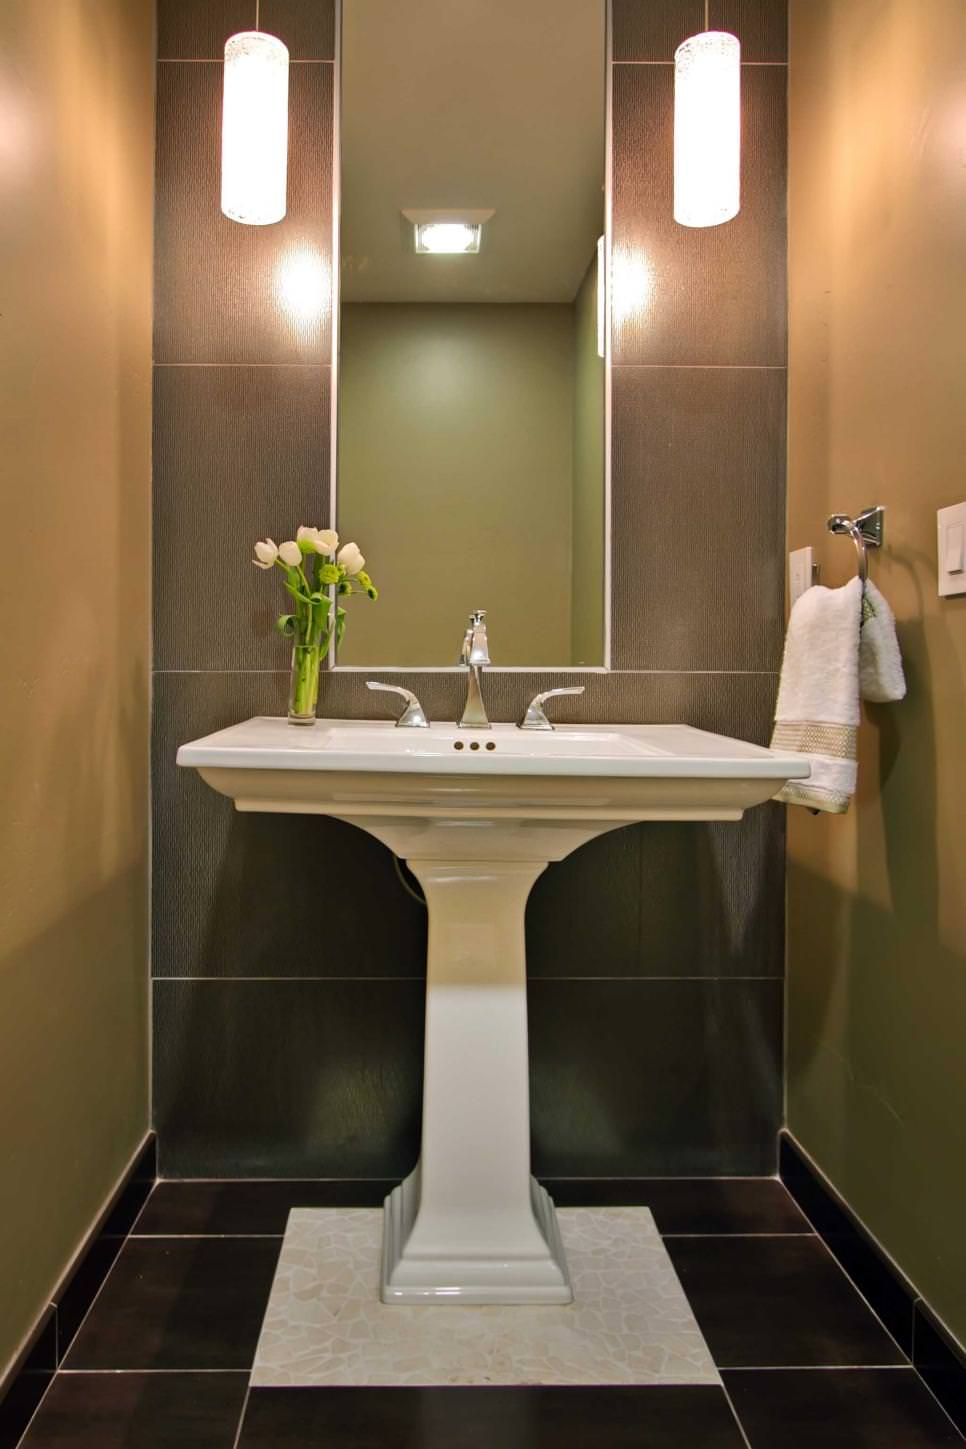 Bathroom with pedestal sink ideas - Transitional Bathroom Pedestal Sink Ideas